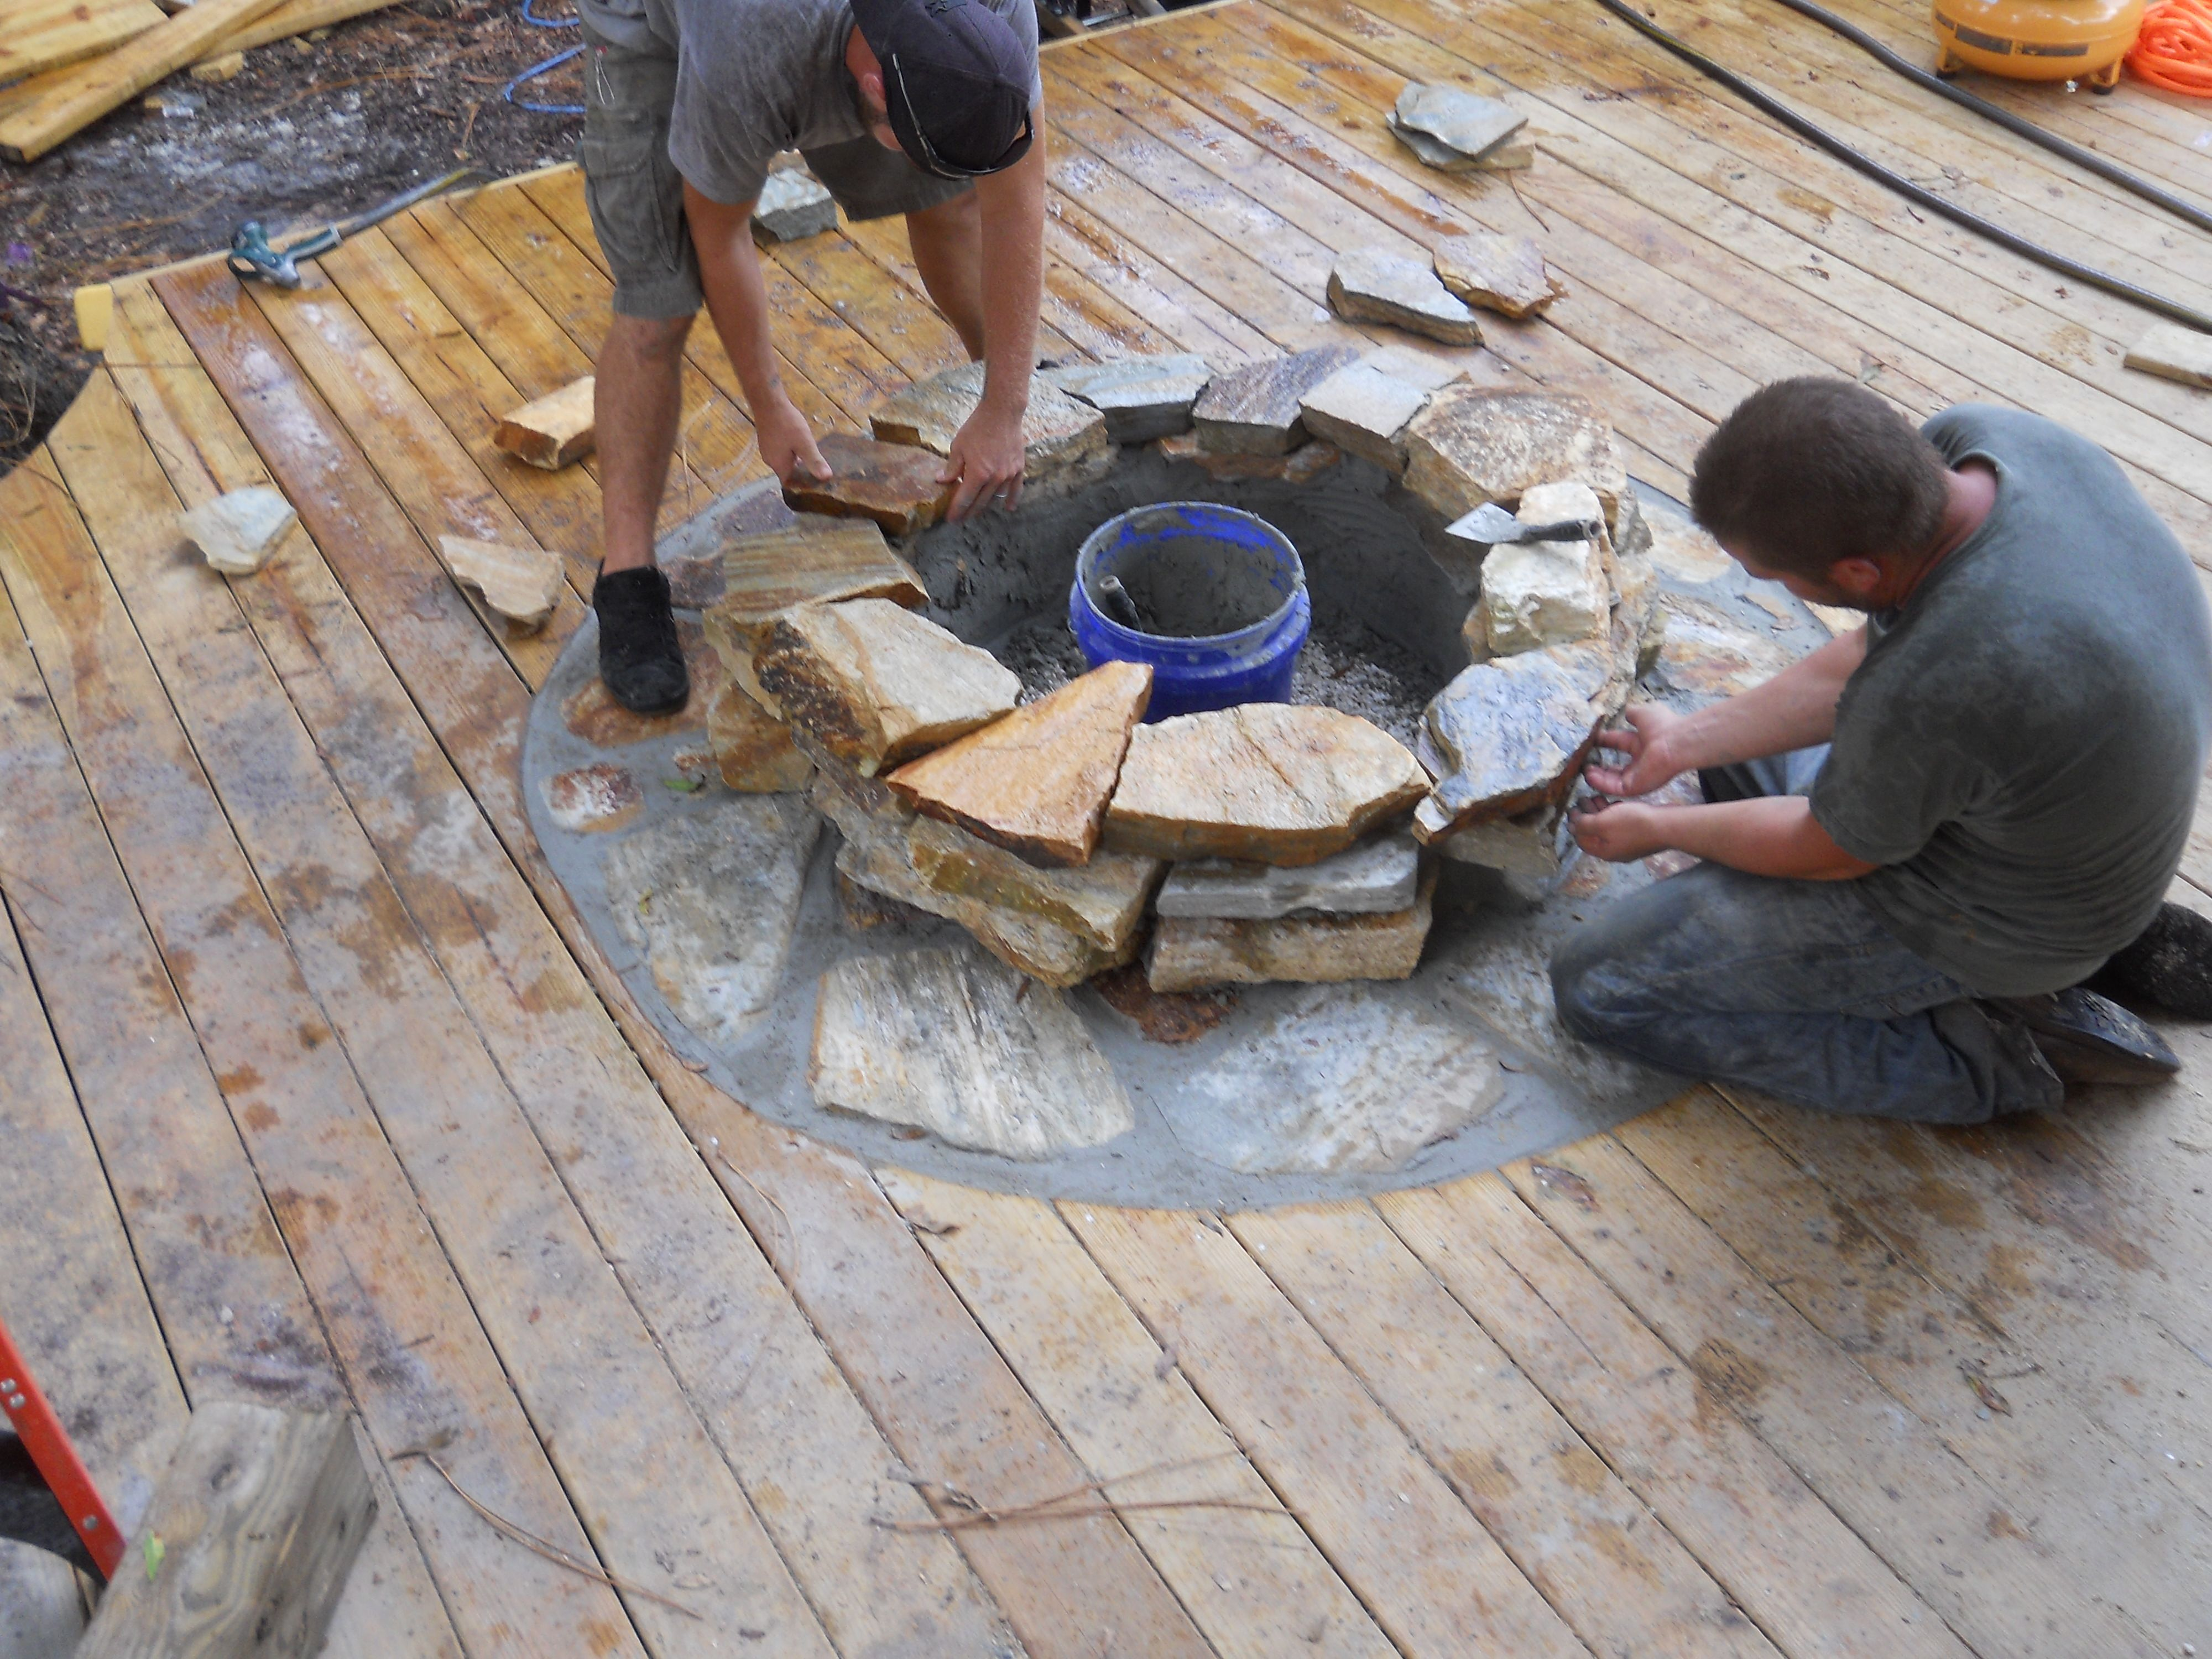 craftsmen constructing a natural stone fire pit on wooden deck with